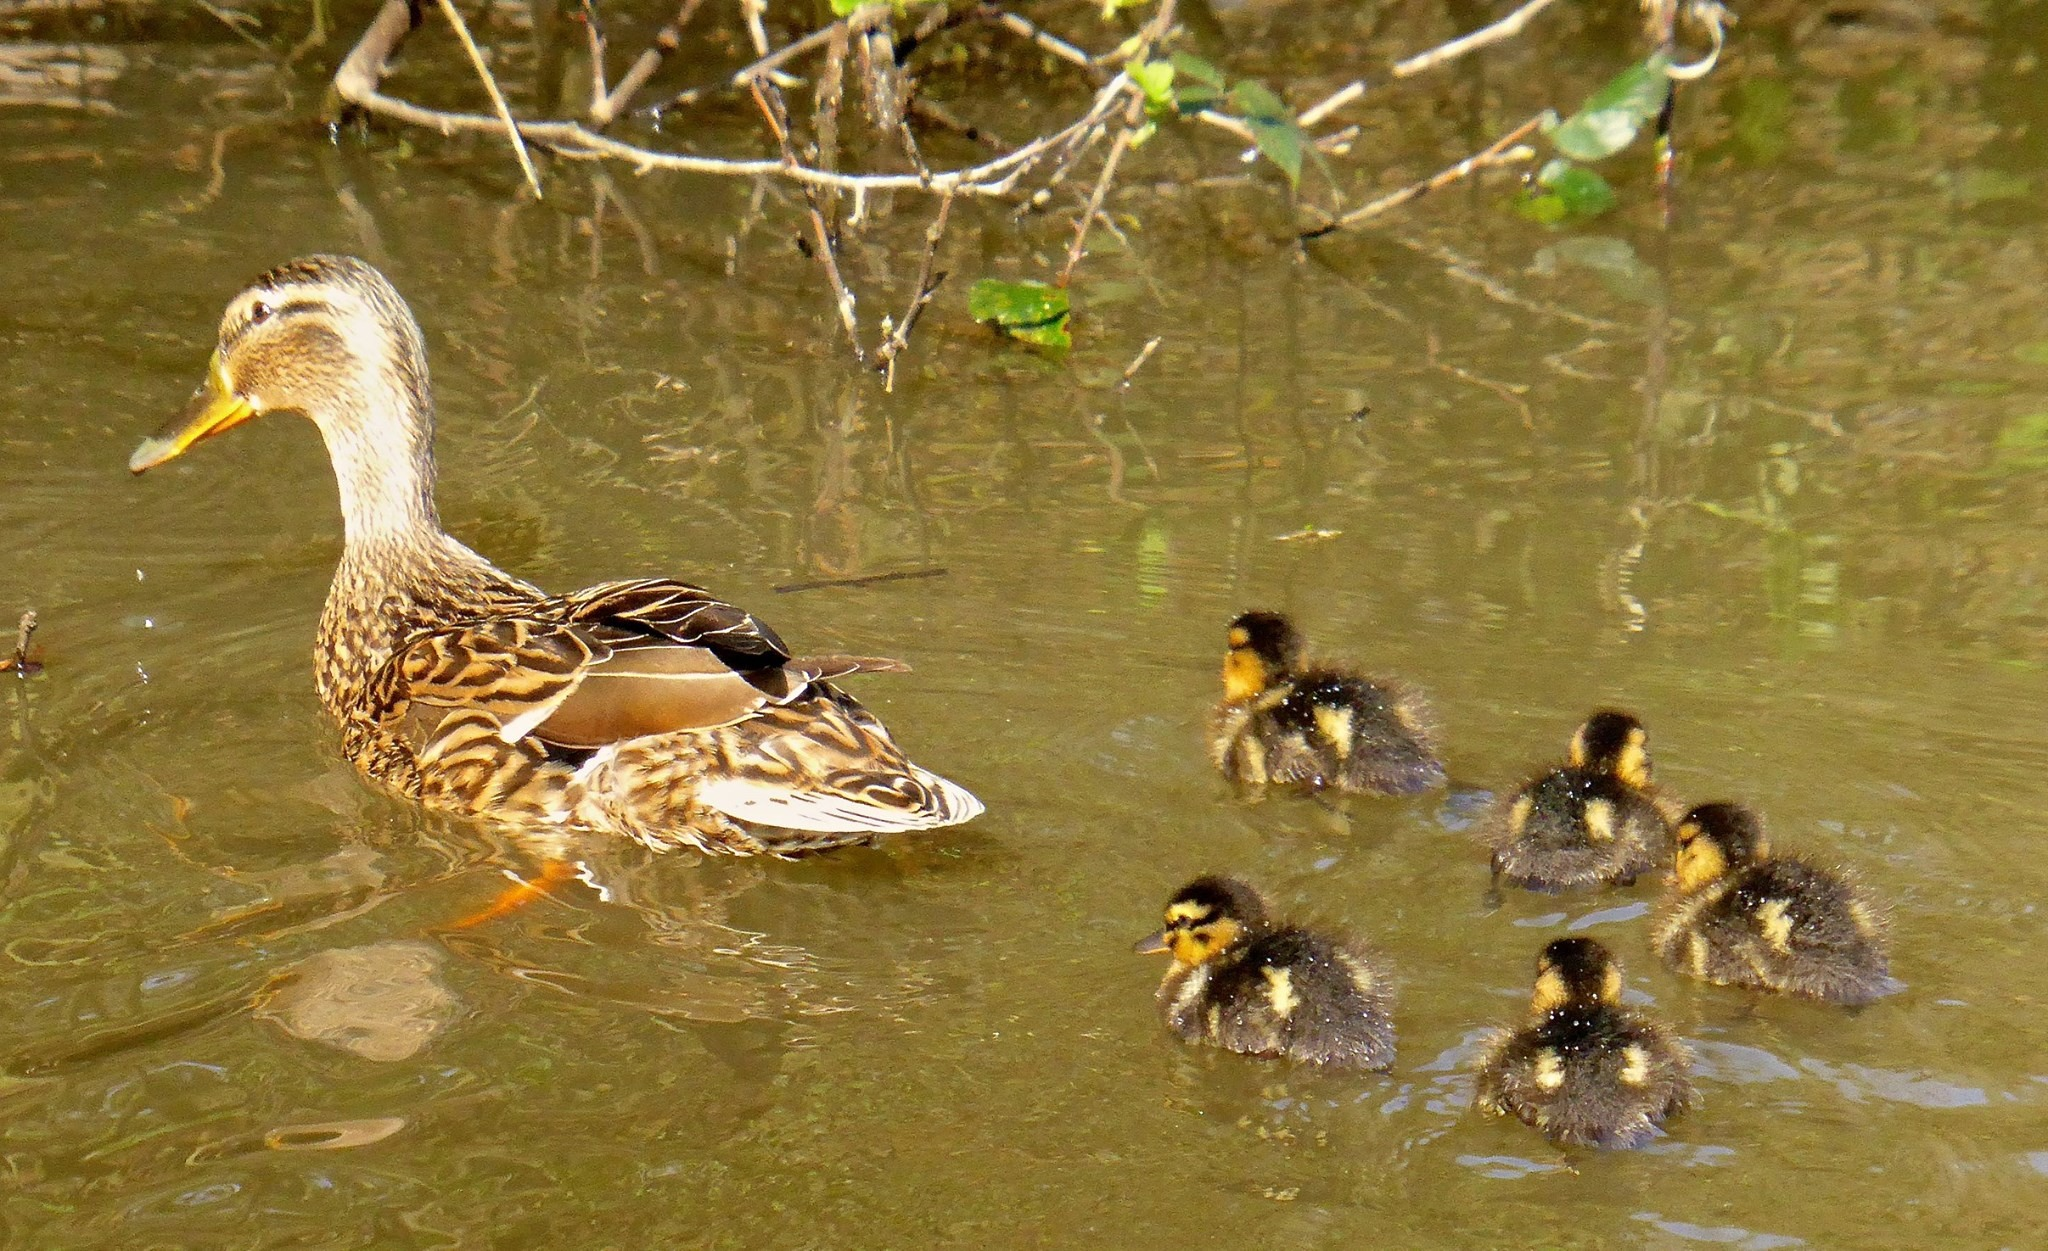 Taken at Holly Hill Country Park by Maria Skipton